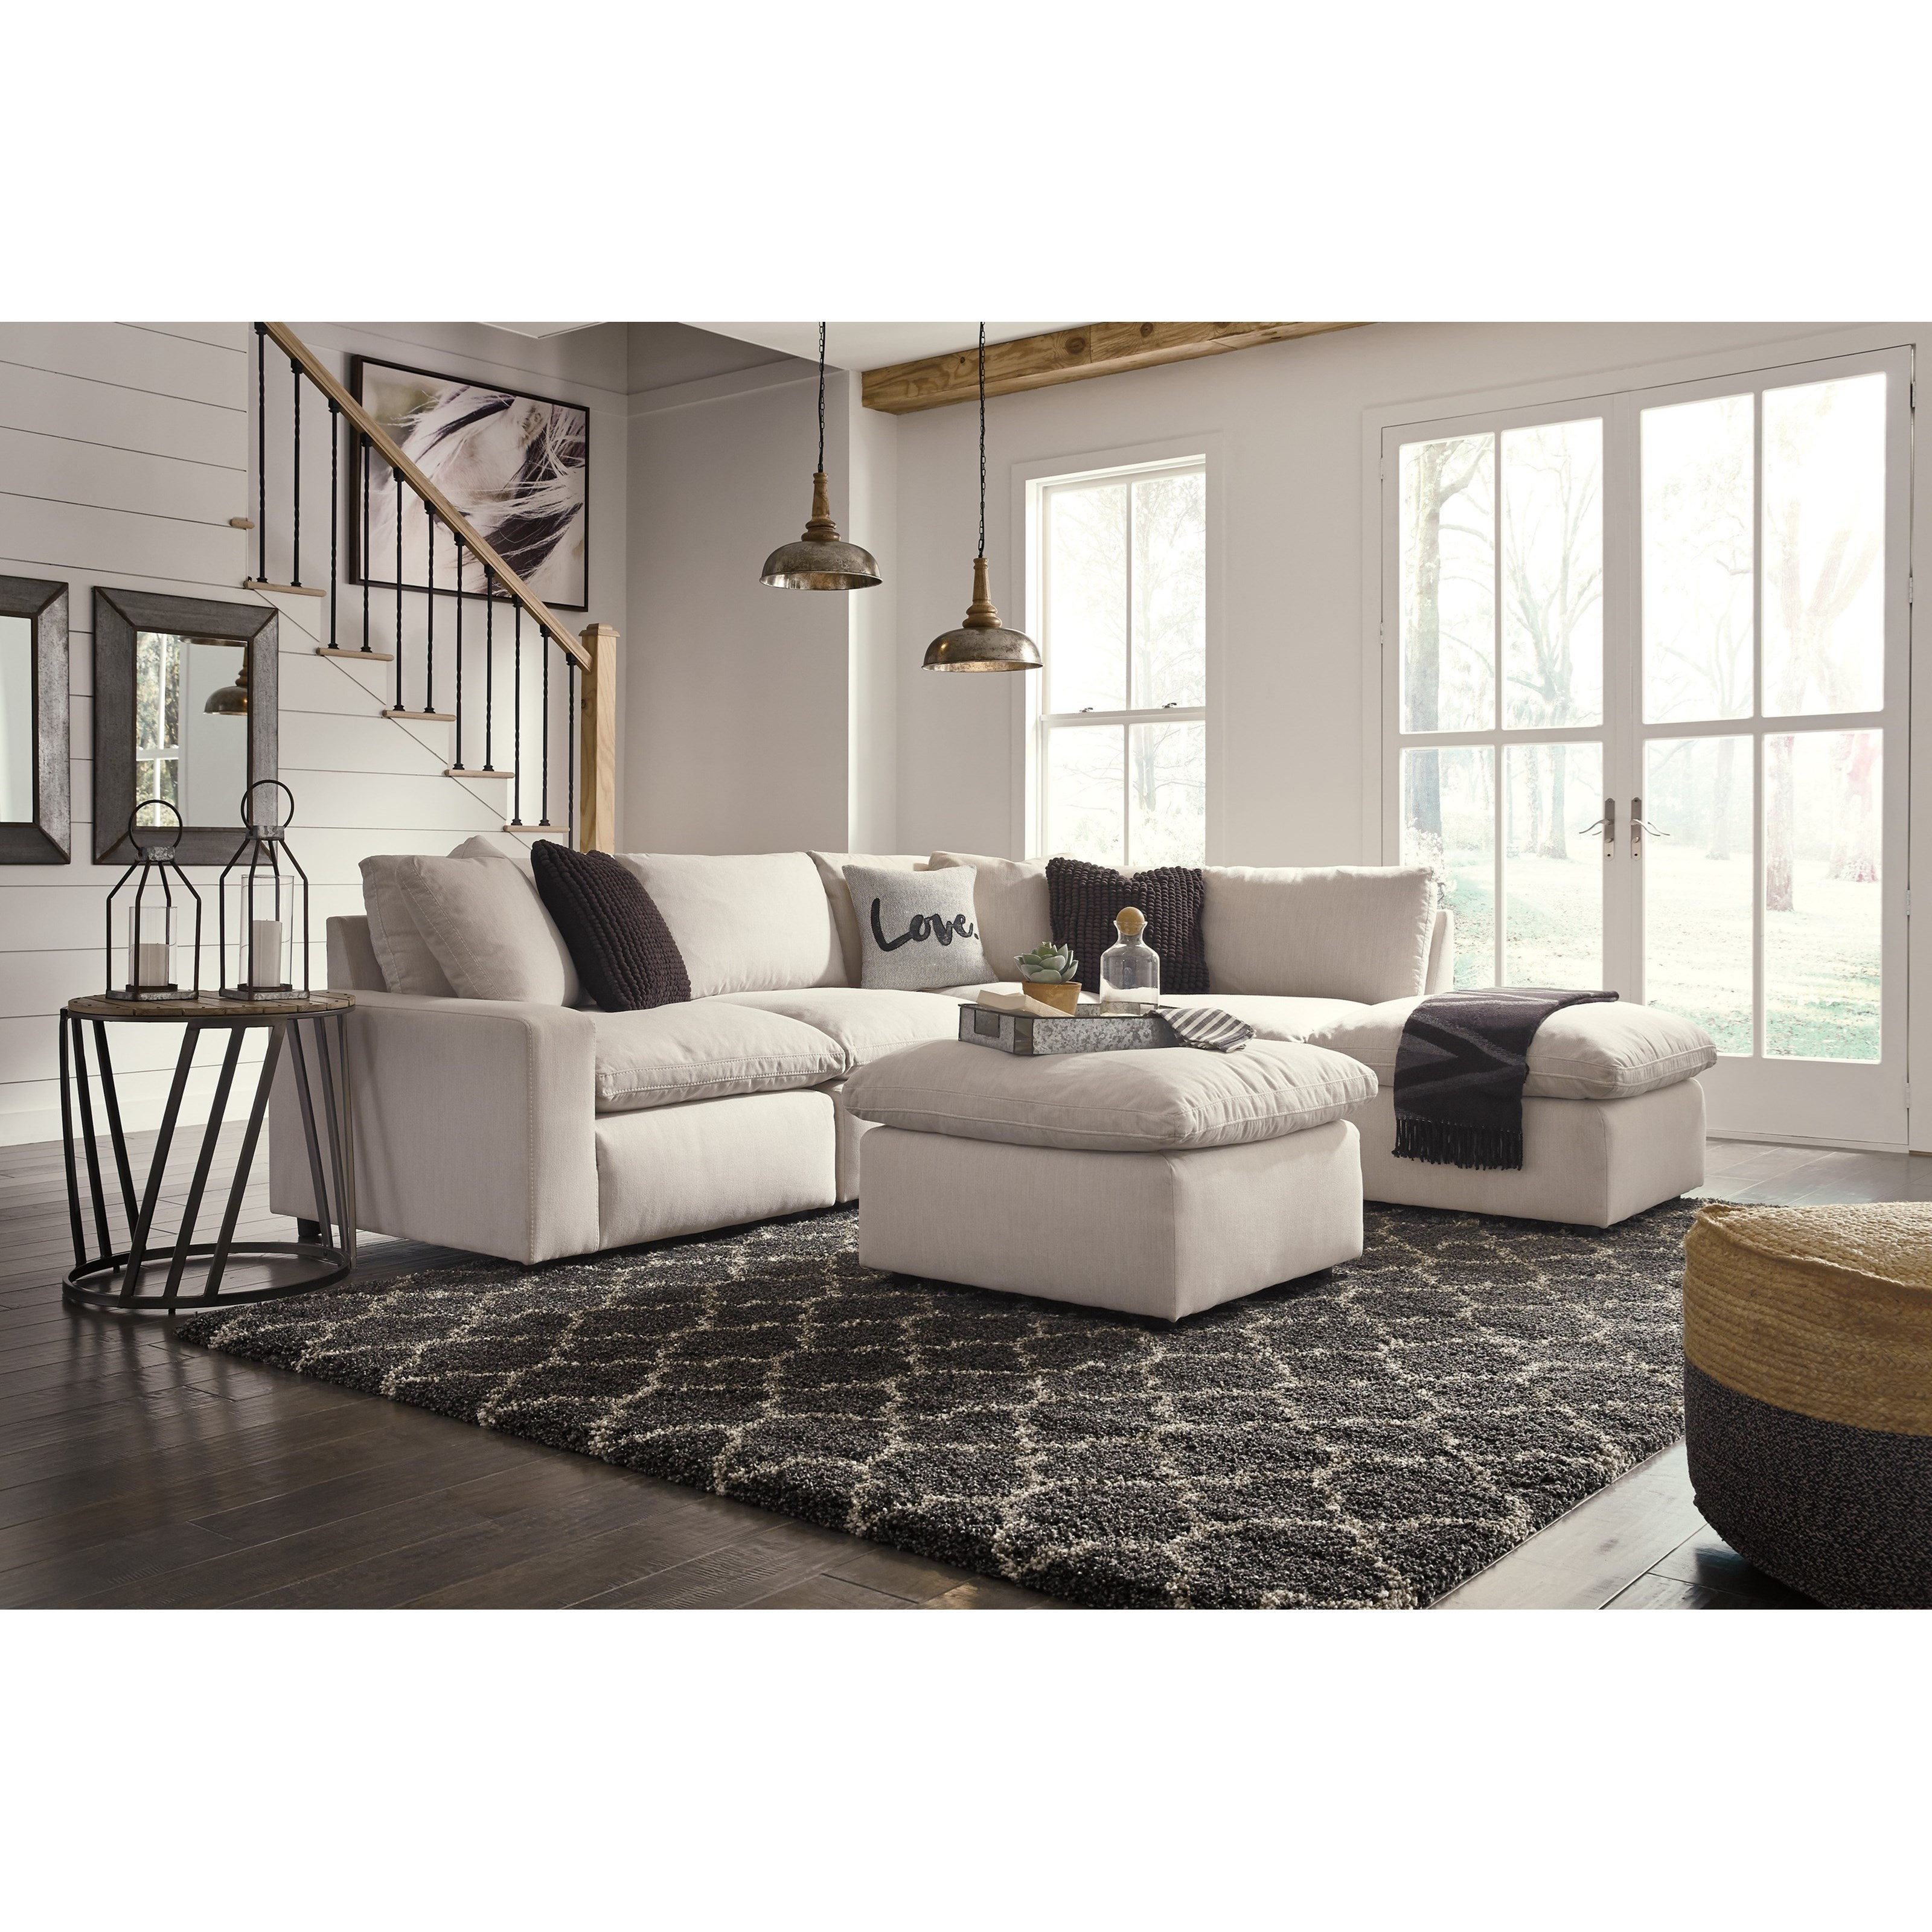 Ashley Design: Signature Design By Ashley Savesto Casual Contemporary 6